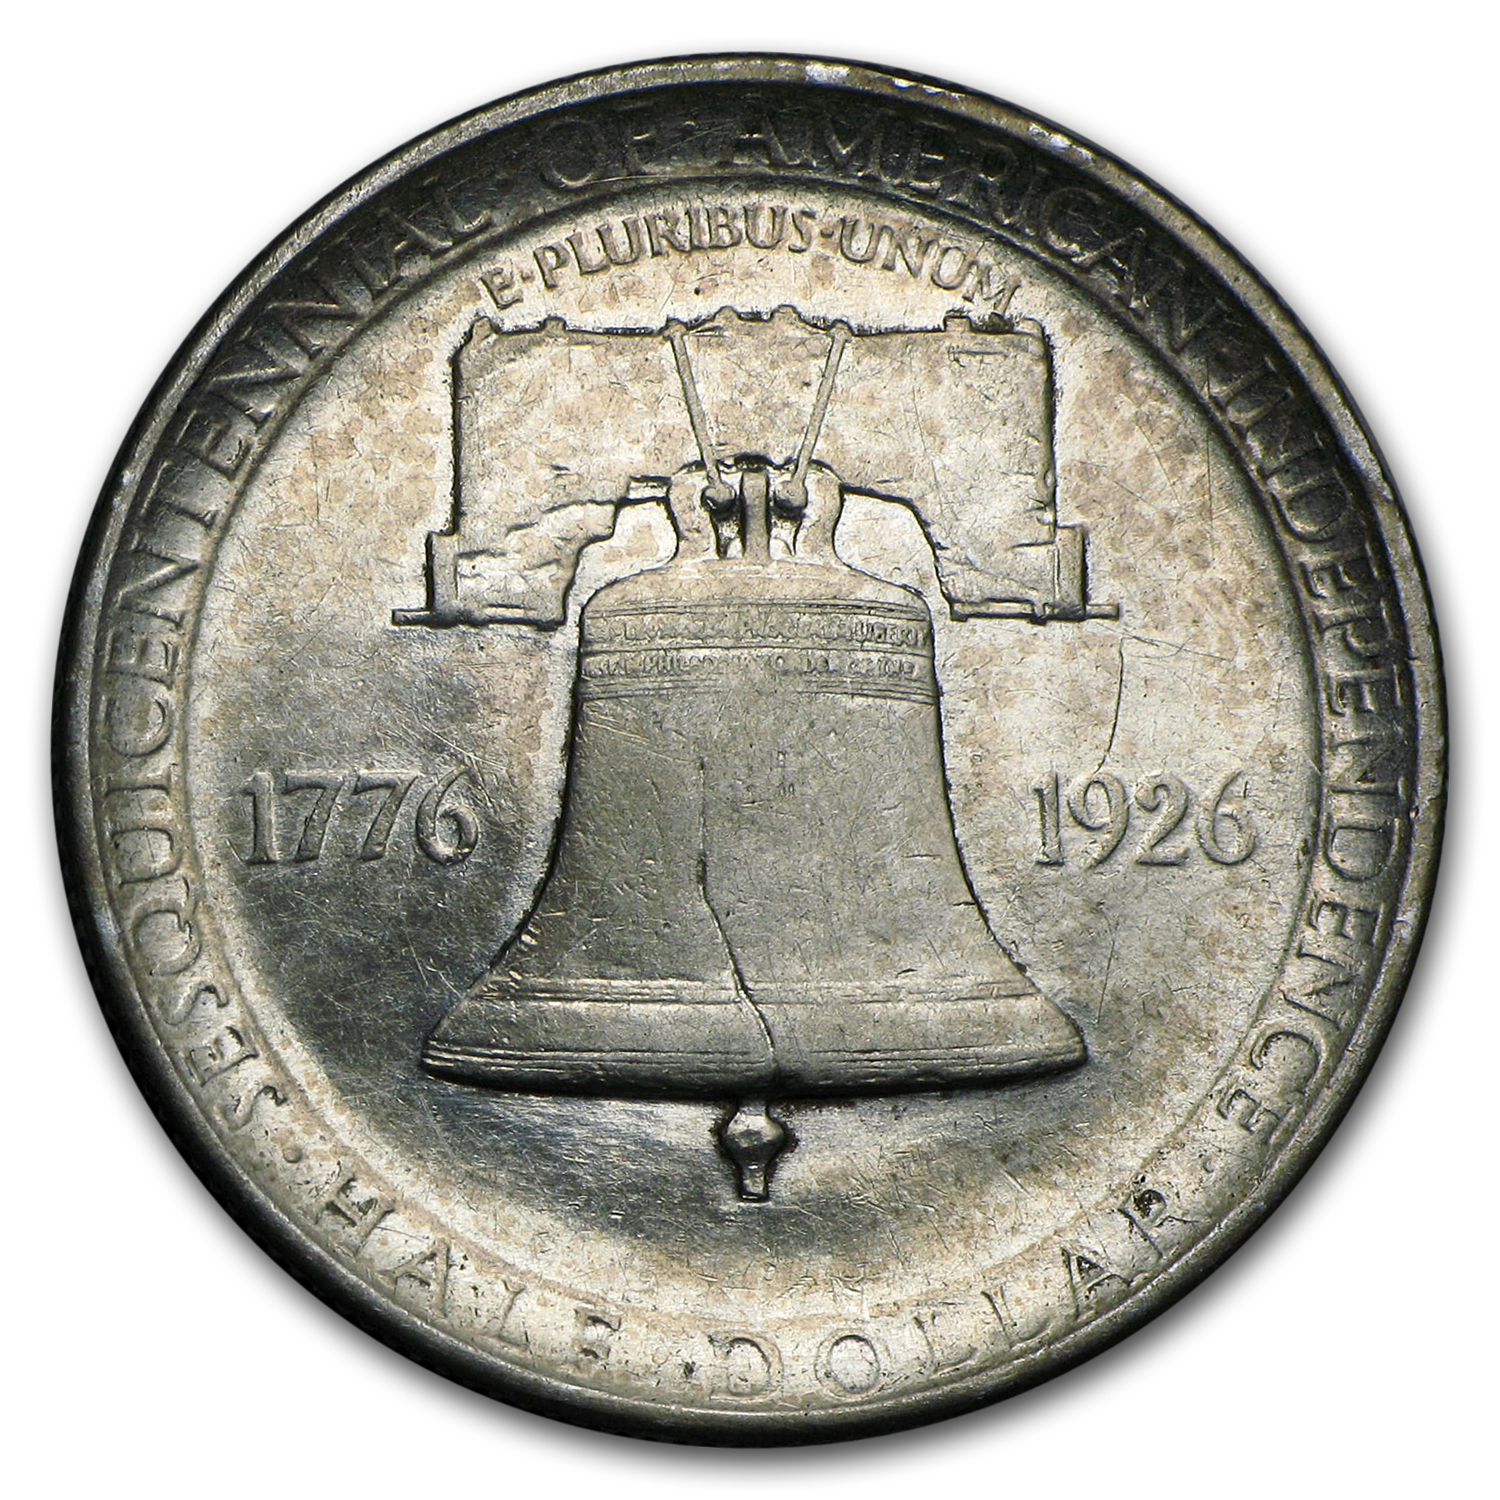 1926 Sesquicentennial of American Independence Half Avg Circ